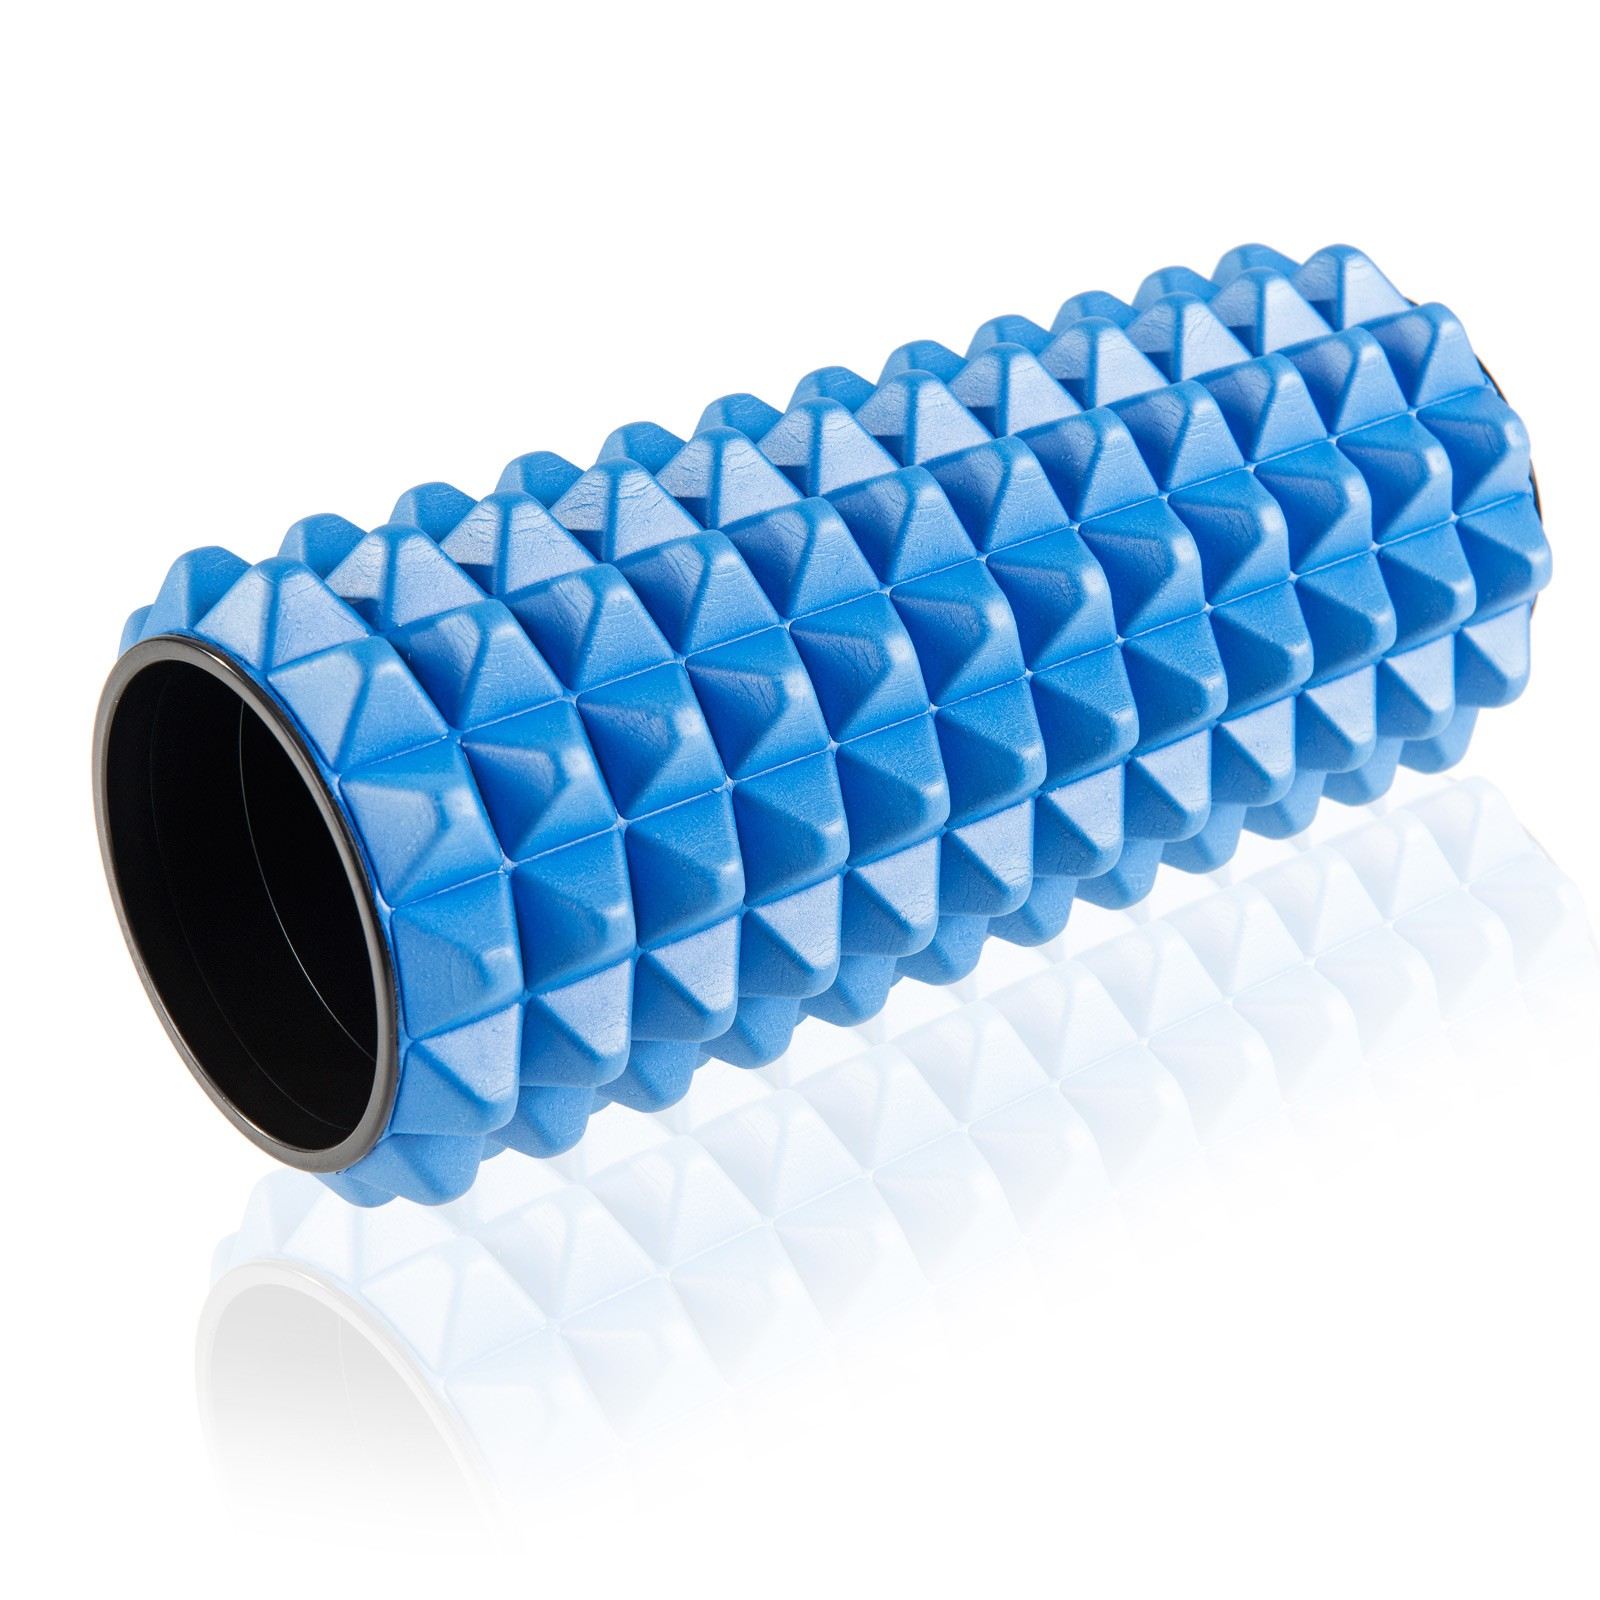 Taurus Foam Roller Massage Roller Blue Buy With 20